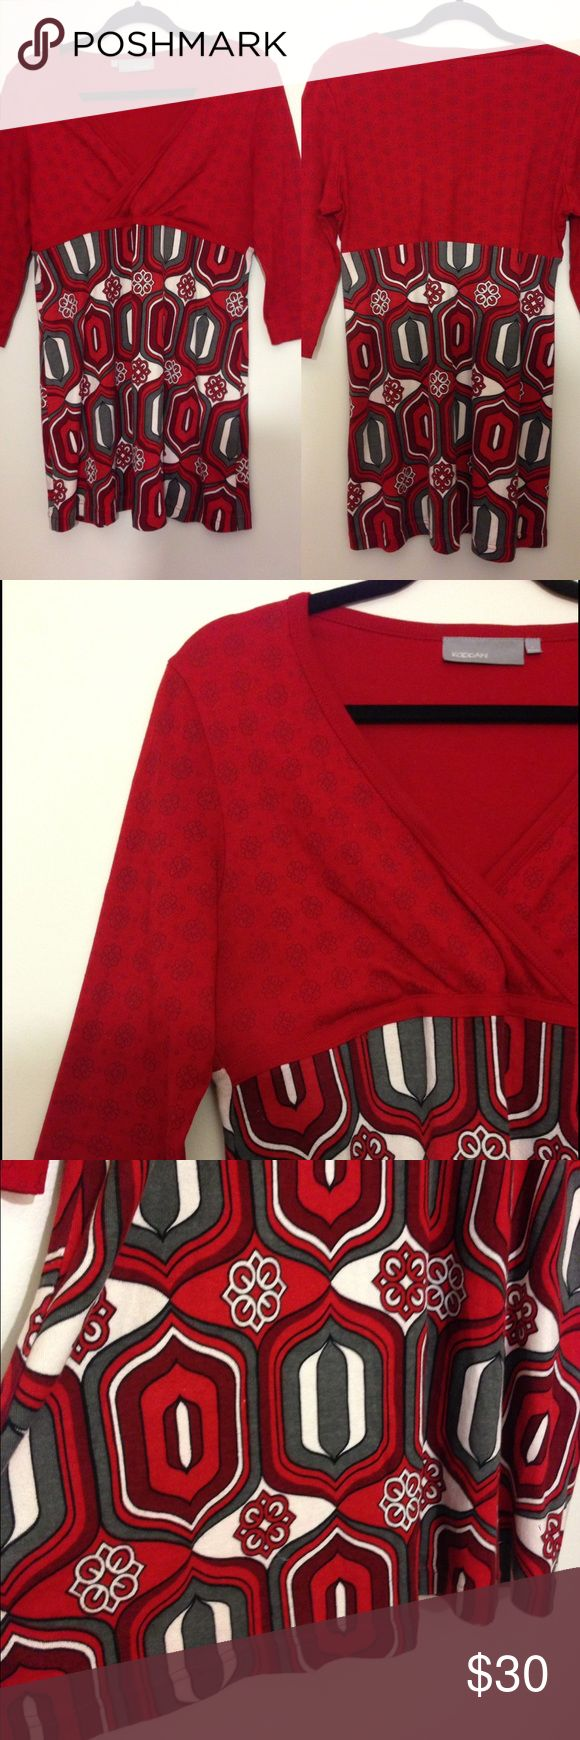 Tunic Dress Gorgeous red jersey tunic dress with two different yet complementing designs. 3 quarter sleeves perfect for spring! Only worn a handful of times before I couldn't fit anymore 😭 European size 44/46. I'm guessing that's between Large/XL USA size. Smoke and pet free home! kappahl Tops Tunics